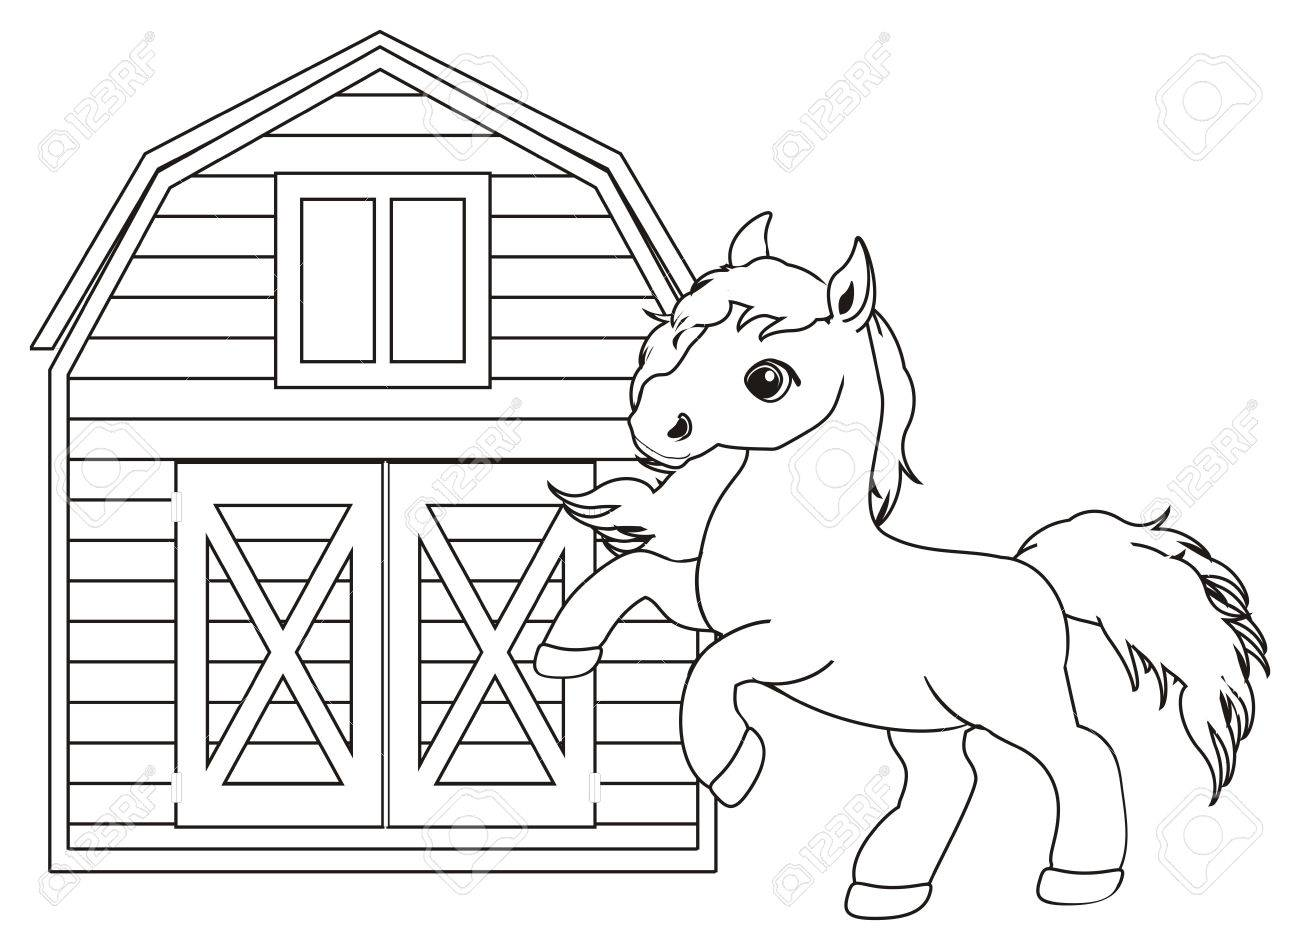 Coloring Horse And Stall Stock Photo, Picture And Royalty Free Image ...